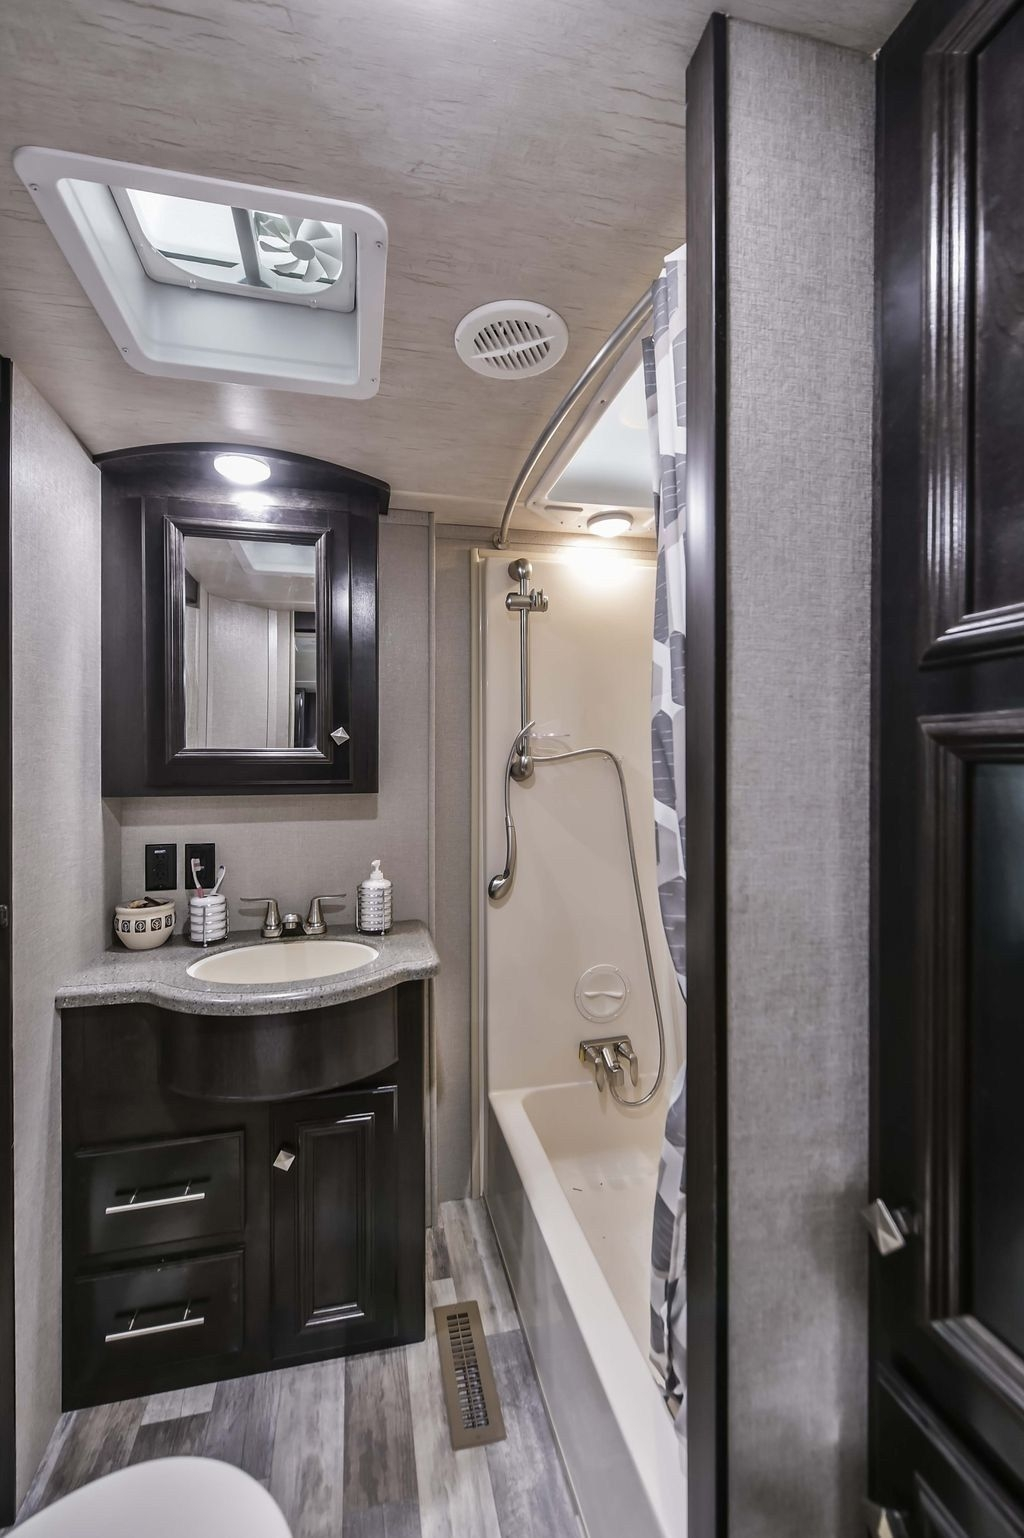 Fascinating Rv Remodel Ideas For Bathroom On A Budget45